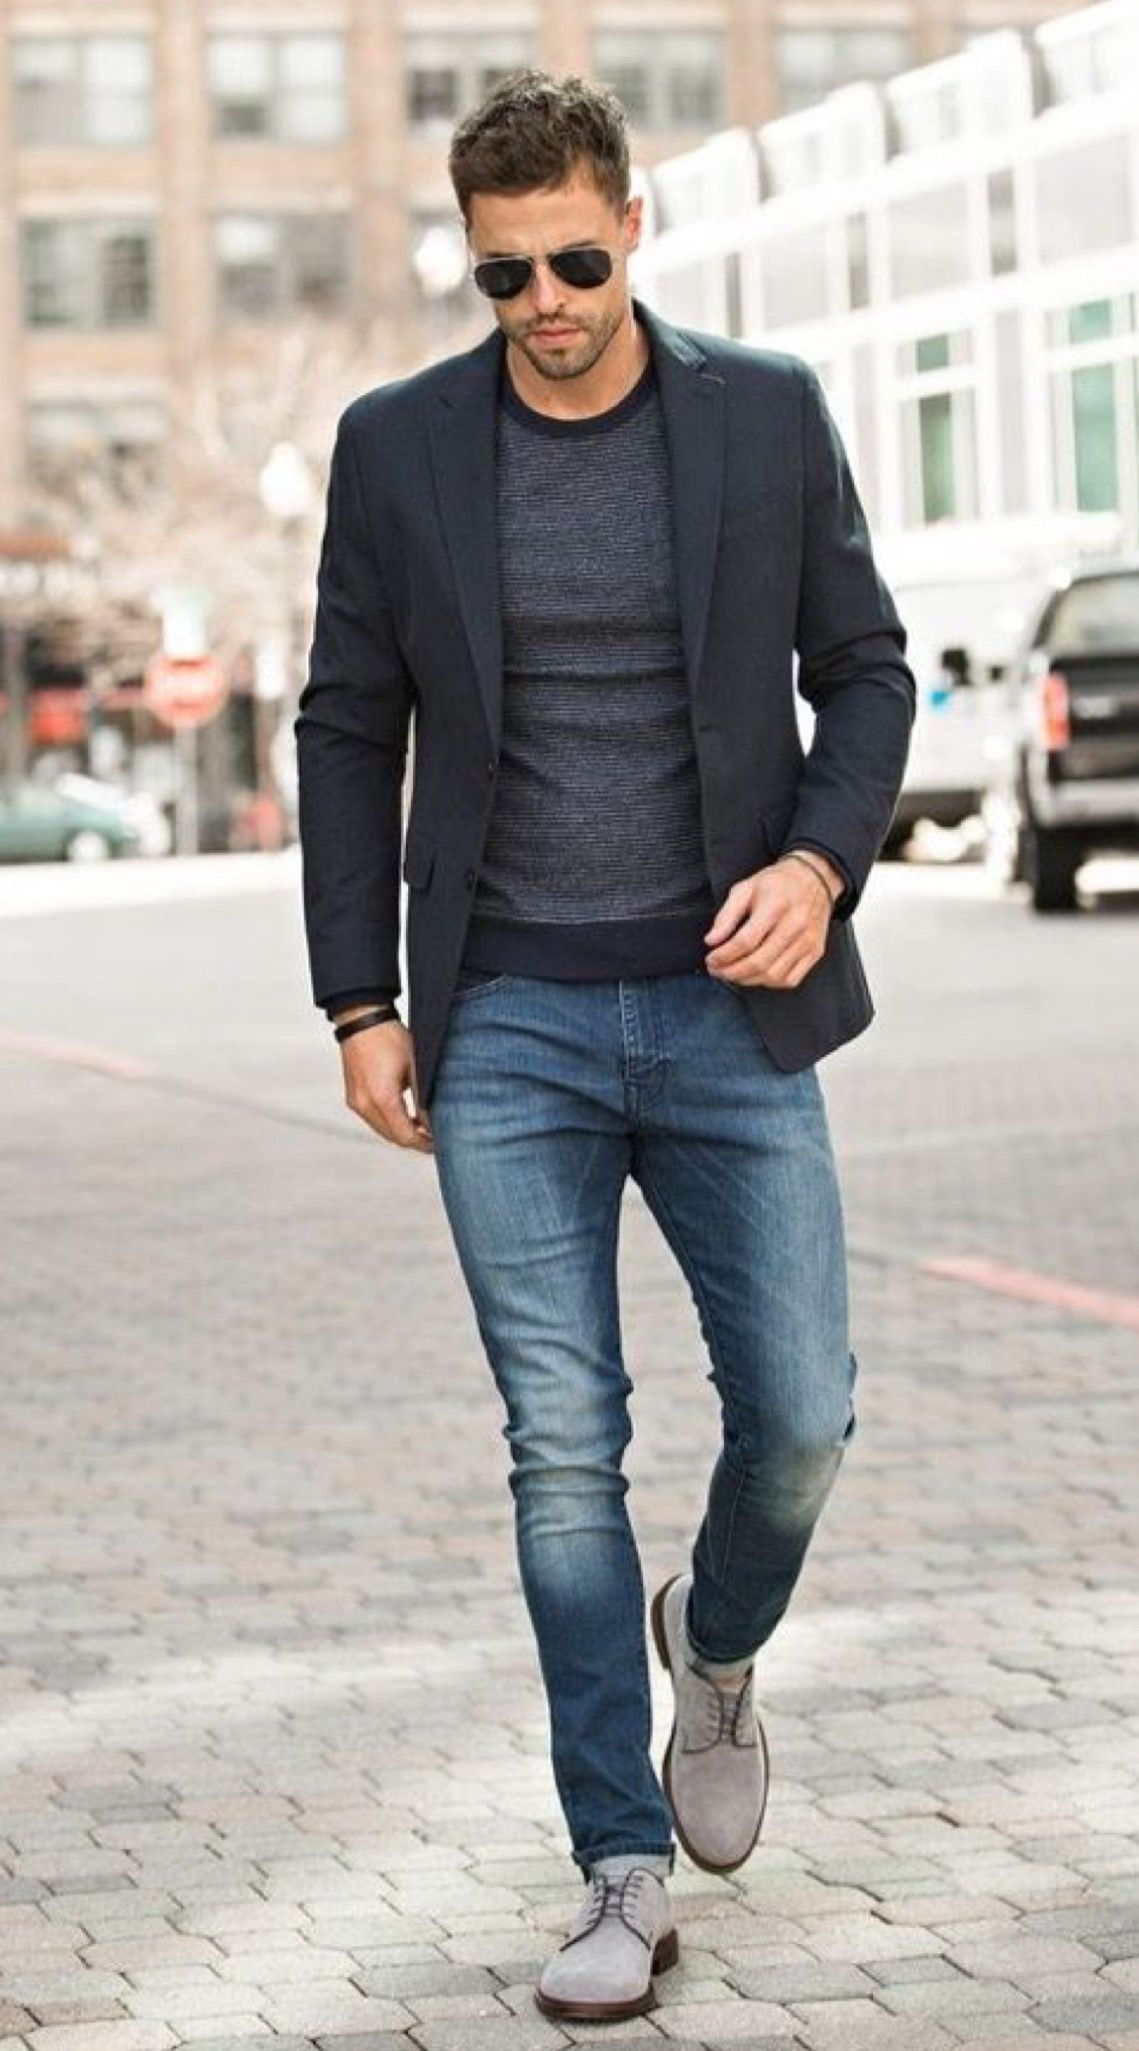 What is Smart Casual Attire for Men?